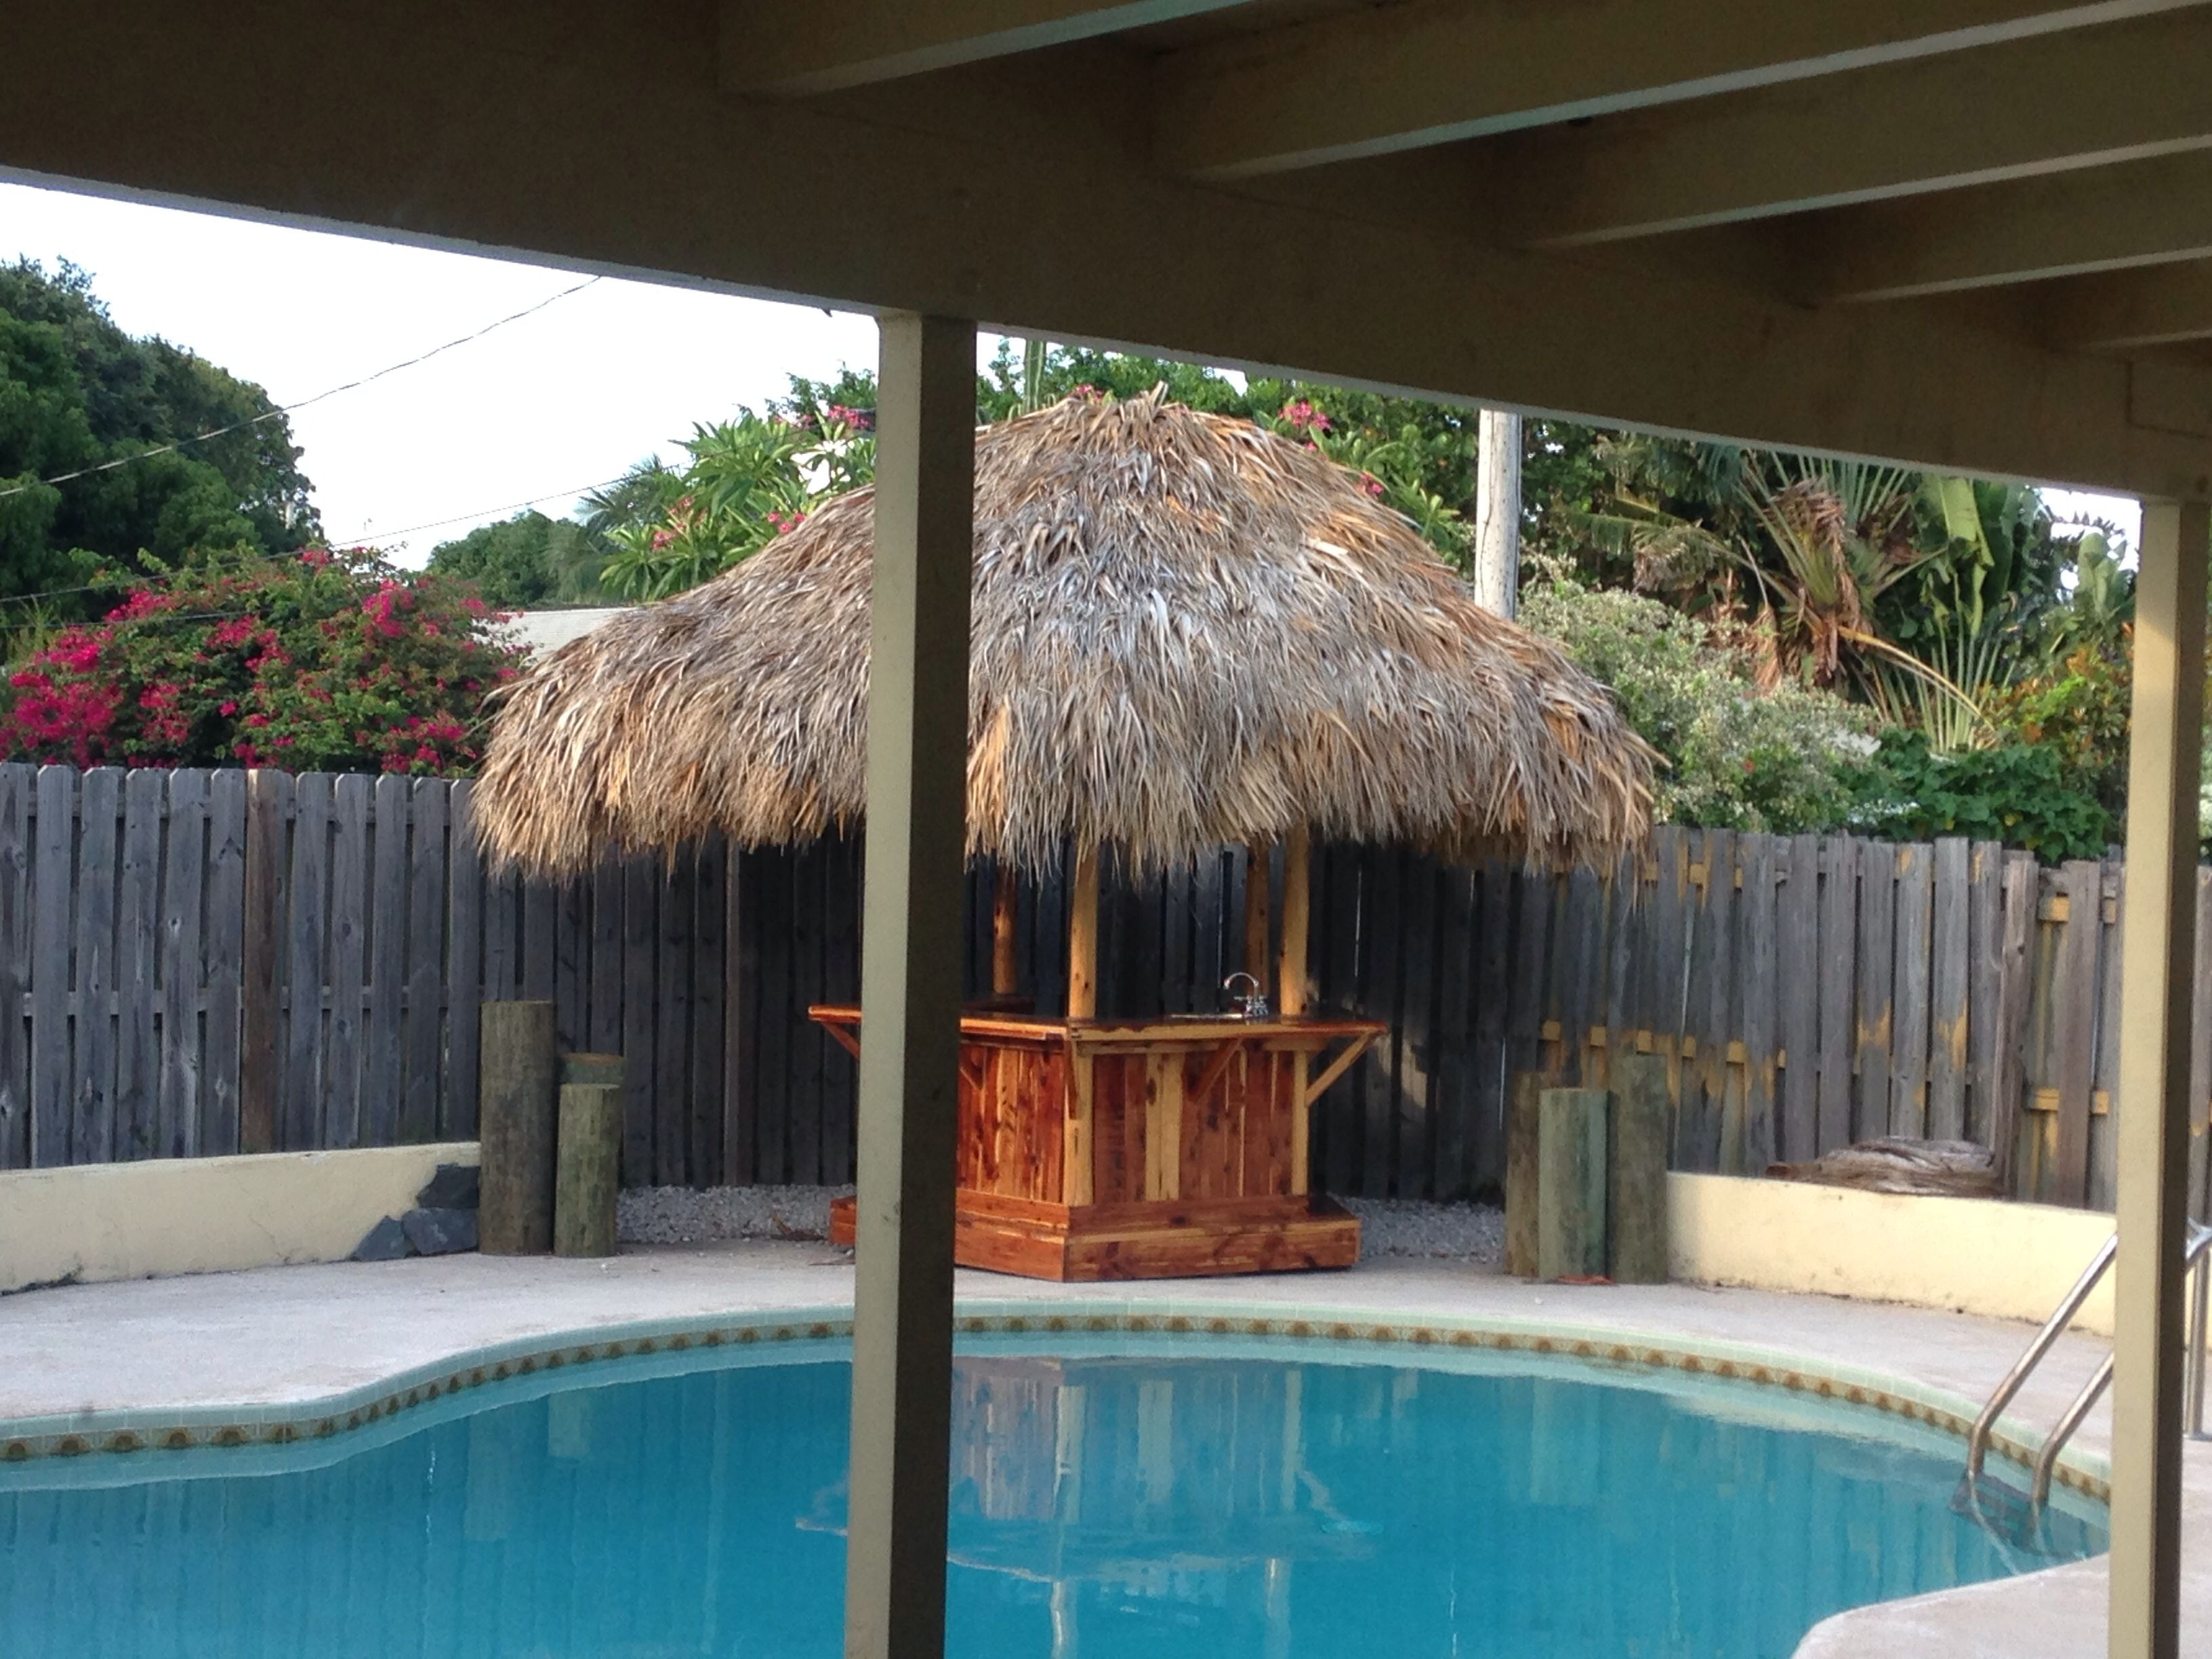 Backyard Tiki Bar Plans : Backyard tiki bar  New House Ideas  Pinterest